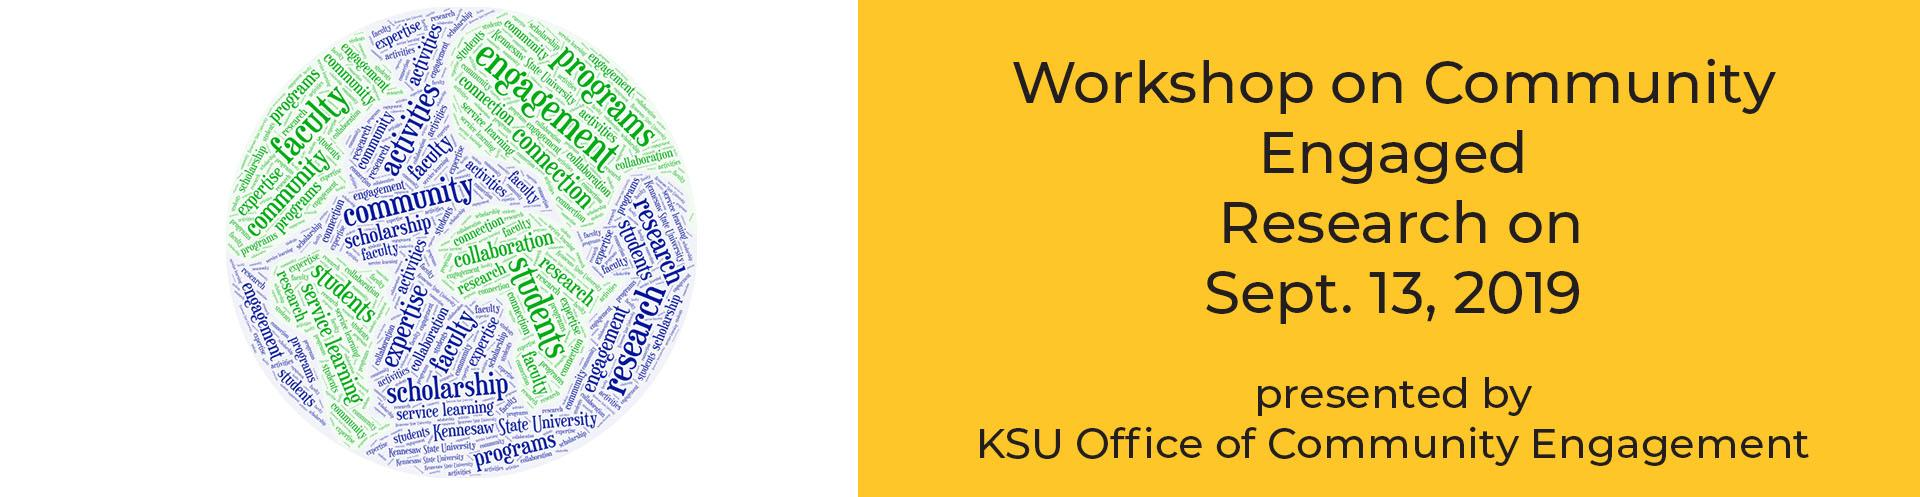 Upcoming Faculty Workshop